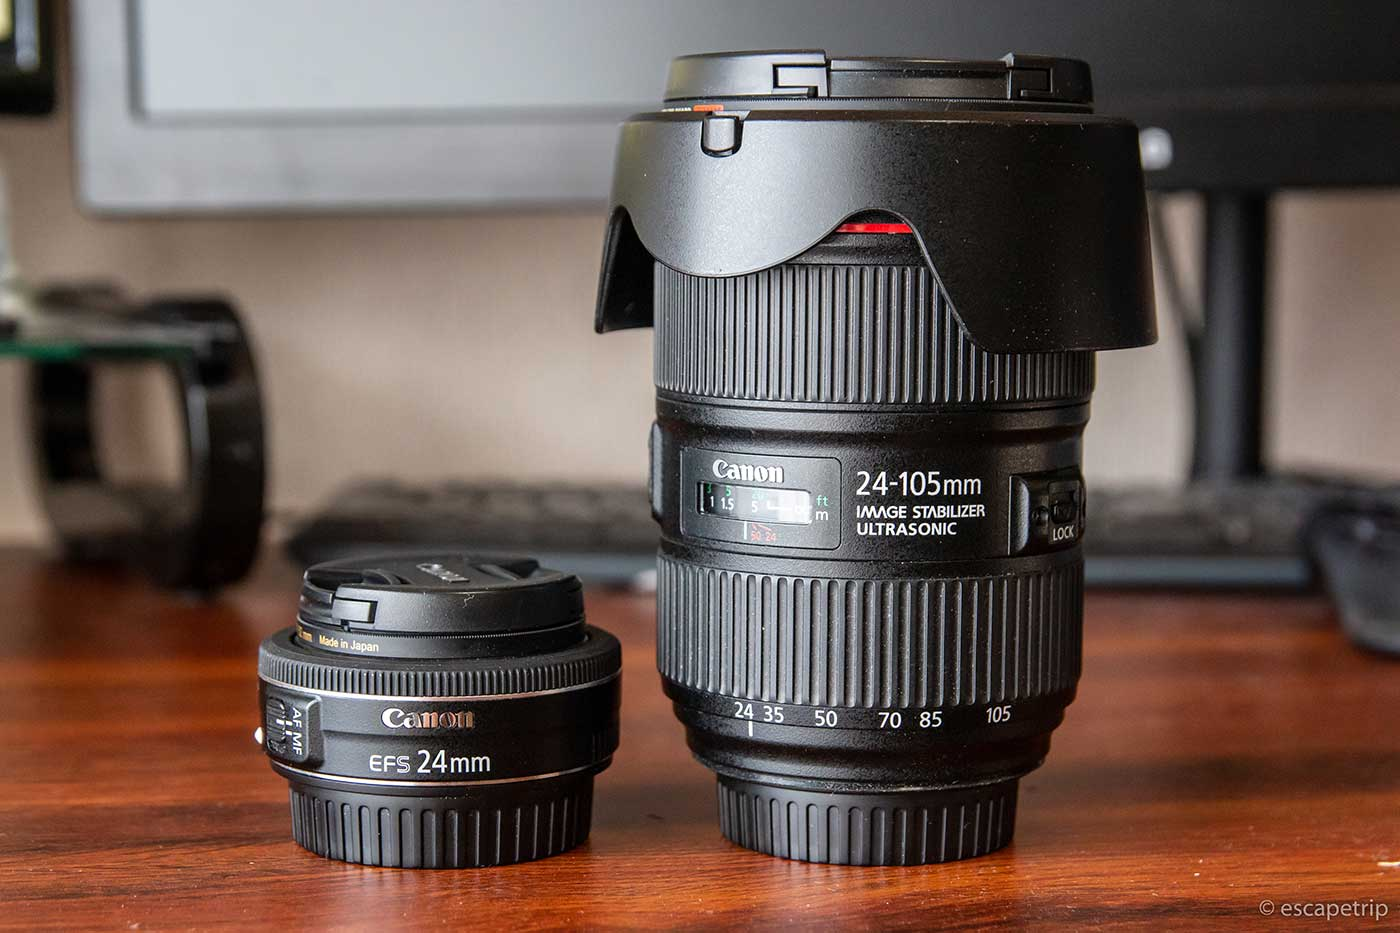 EF-S24mm F2.8 STMとEF24-105mm F4L IS II USMの比較